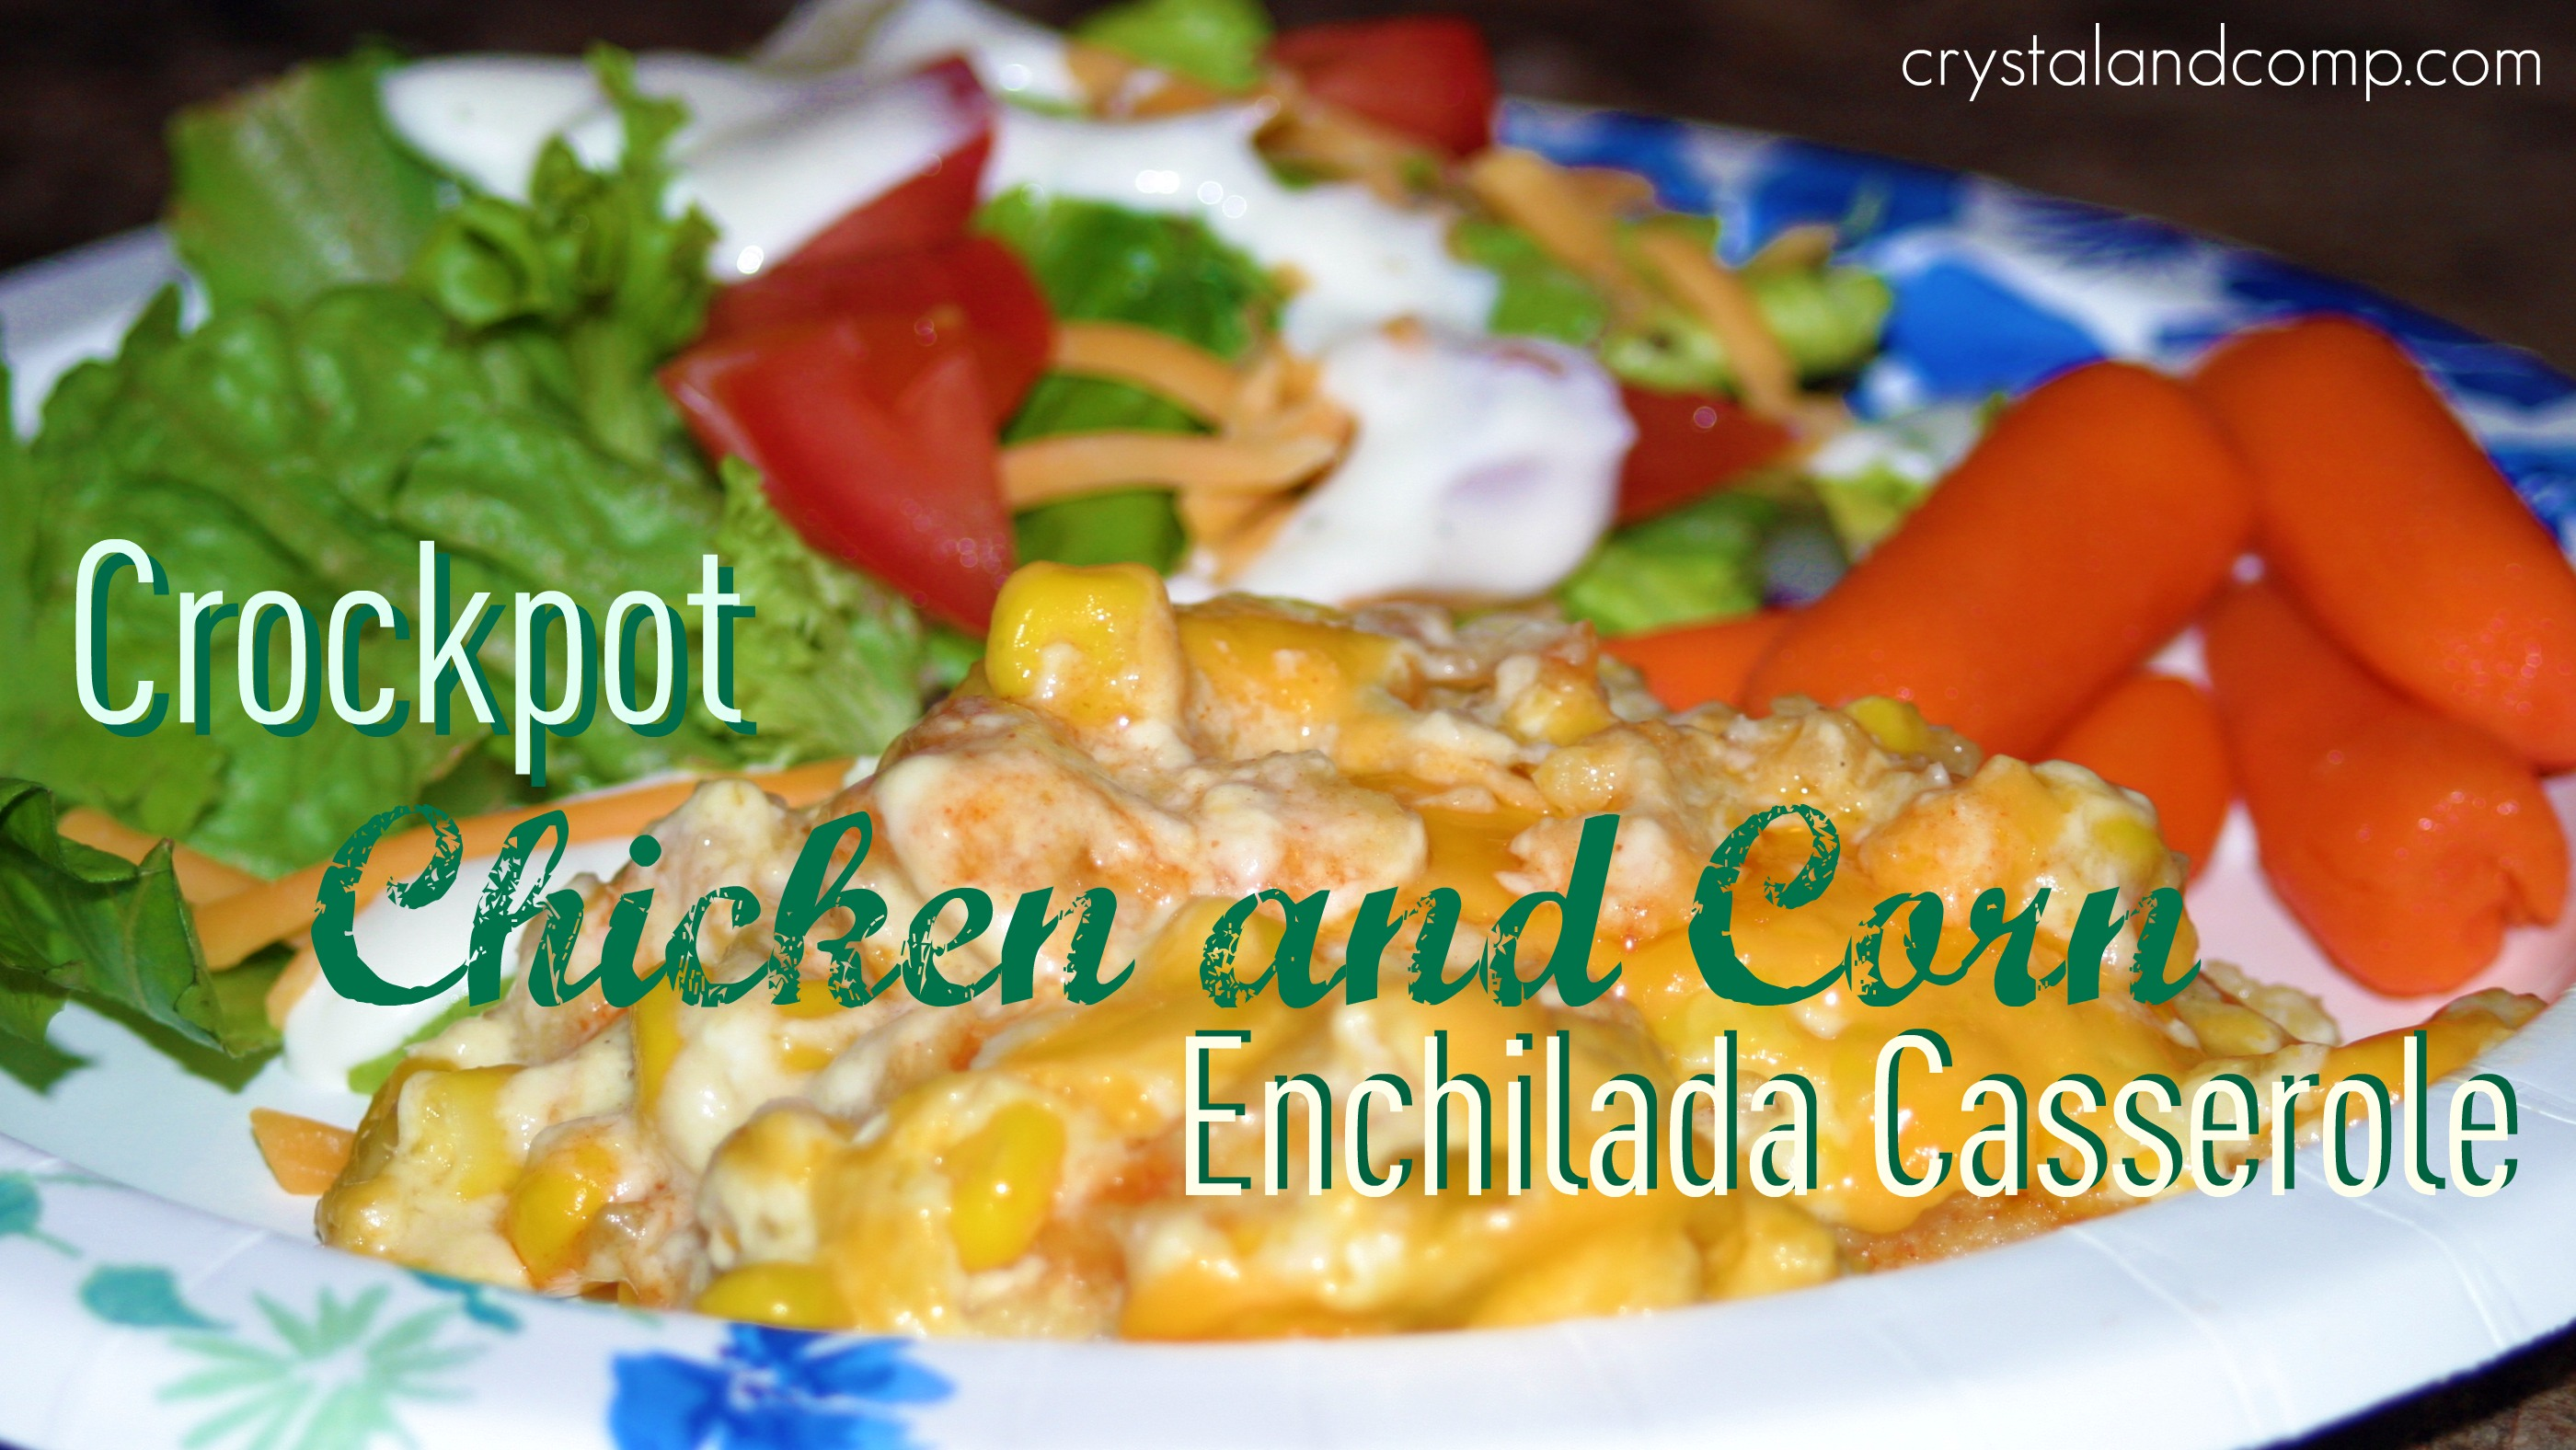 4 7 From 7 Reviews Print Crockpot Chicken And Corn Enchilada Casserole